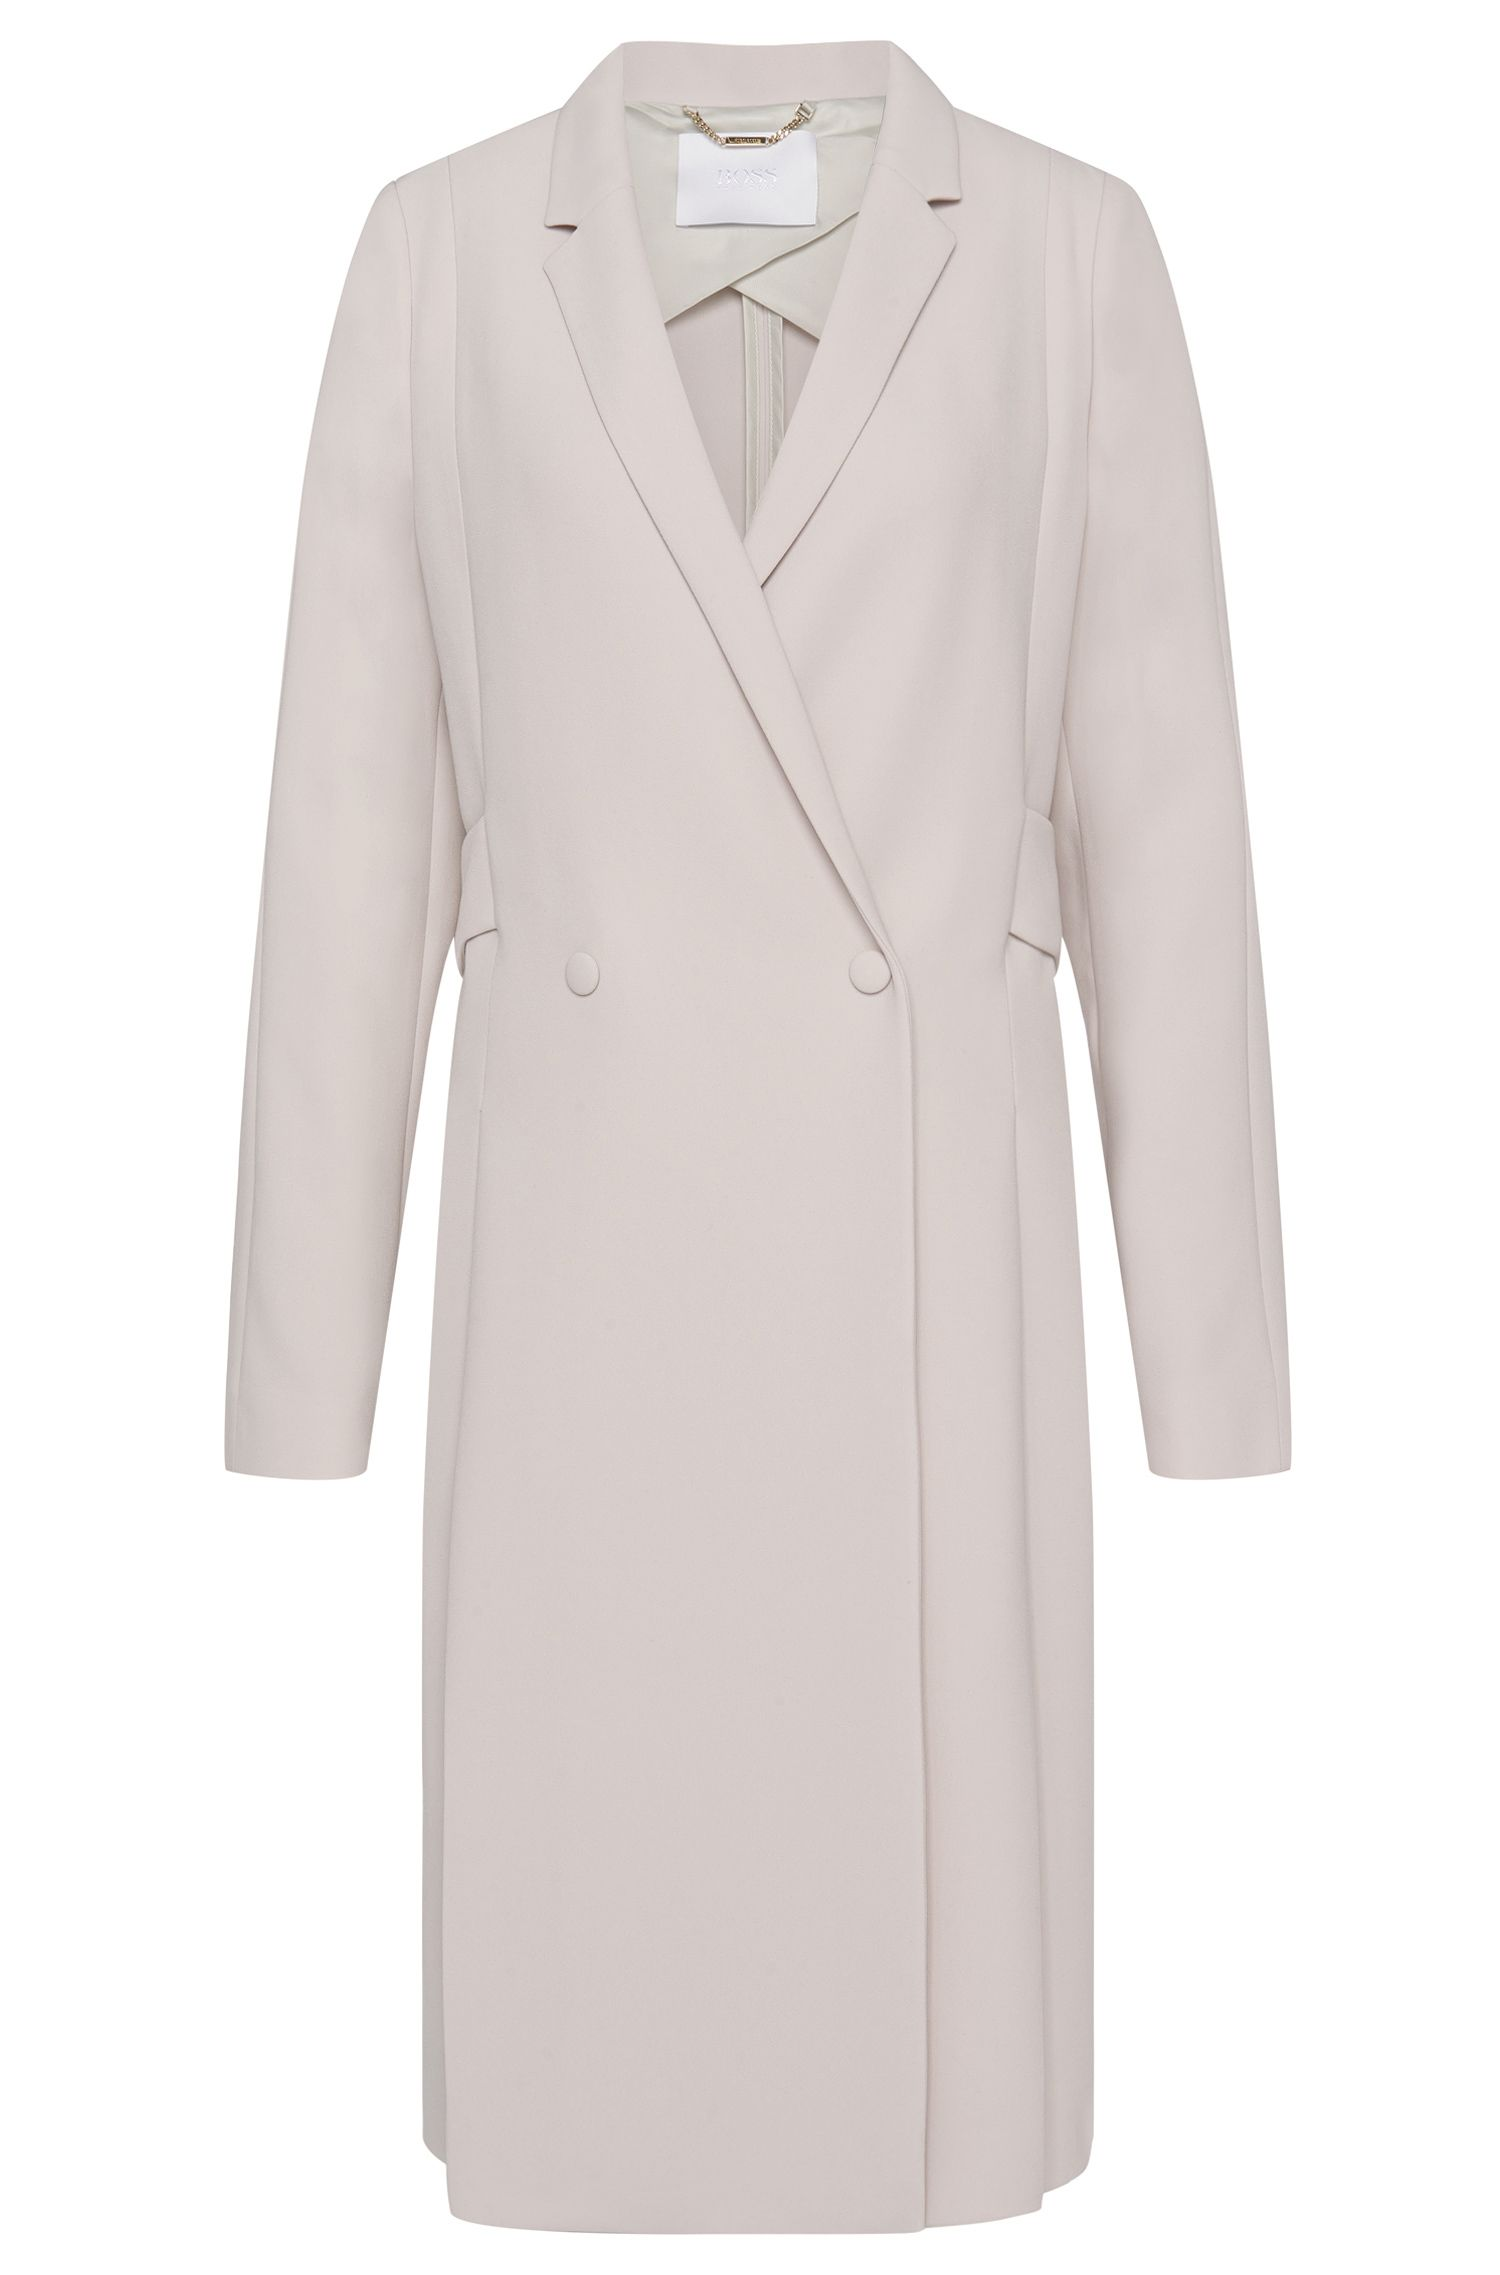 'Cipeila' | Relaxed Fit Trench Coat